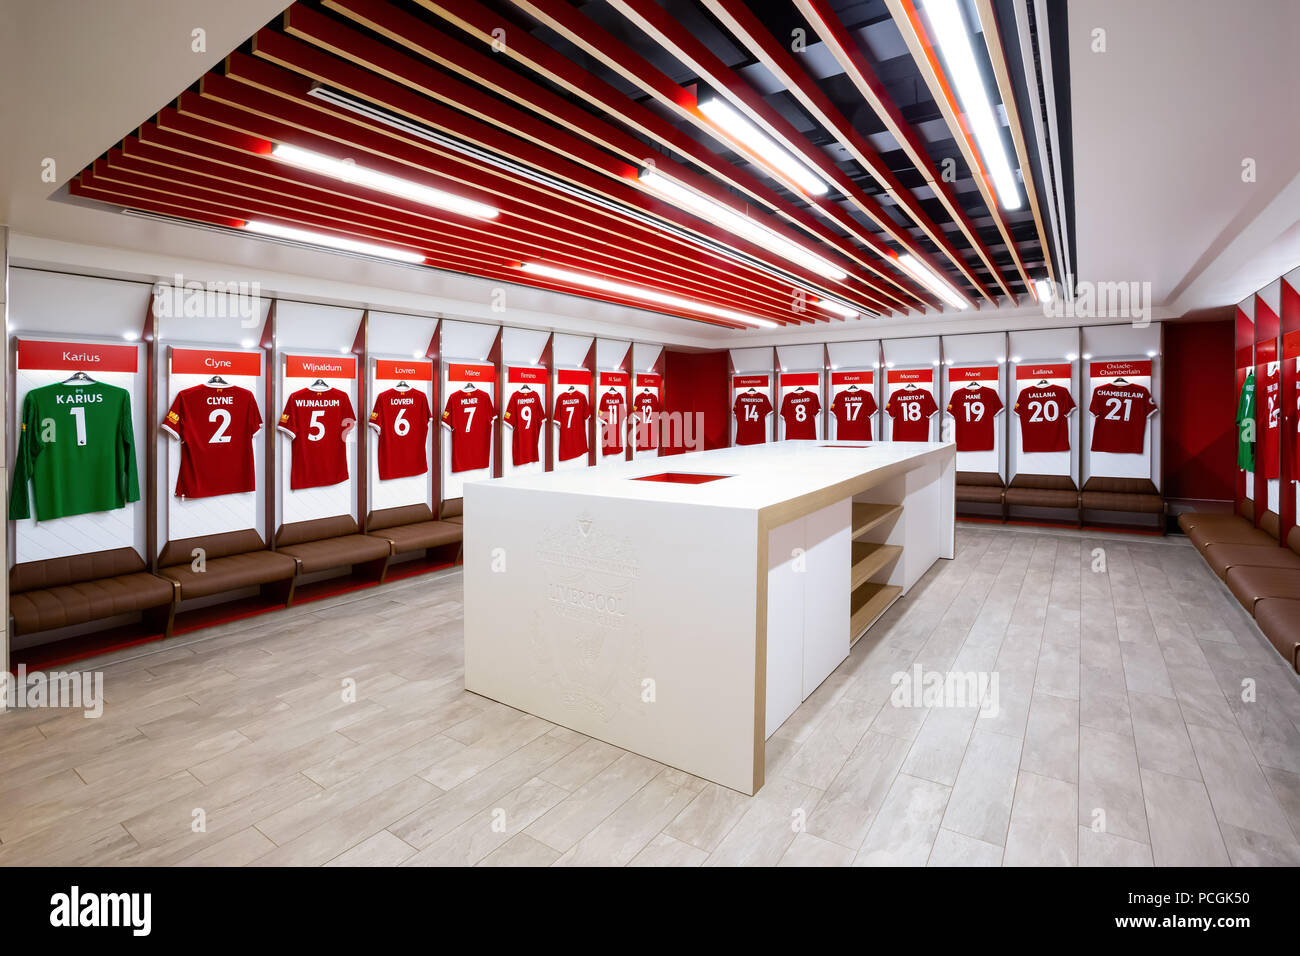 8d6ac22c1 Player s jerseys hung in fornt of lockers in the changing room at Anfield  stadium in Liverpool